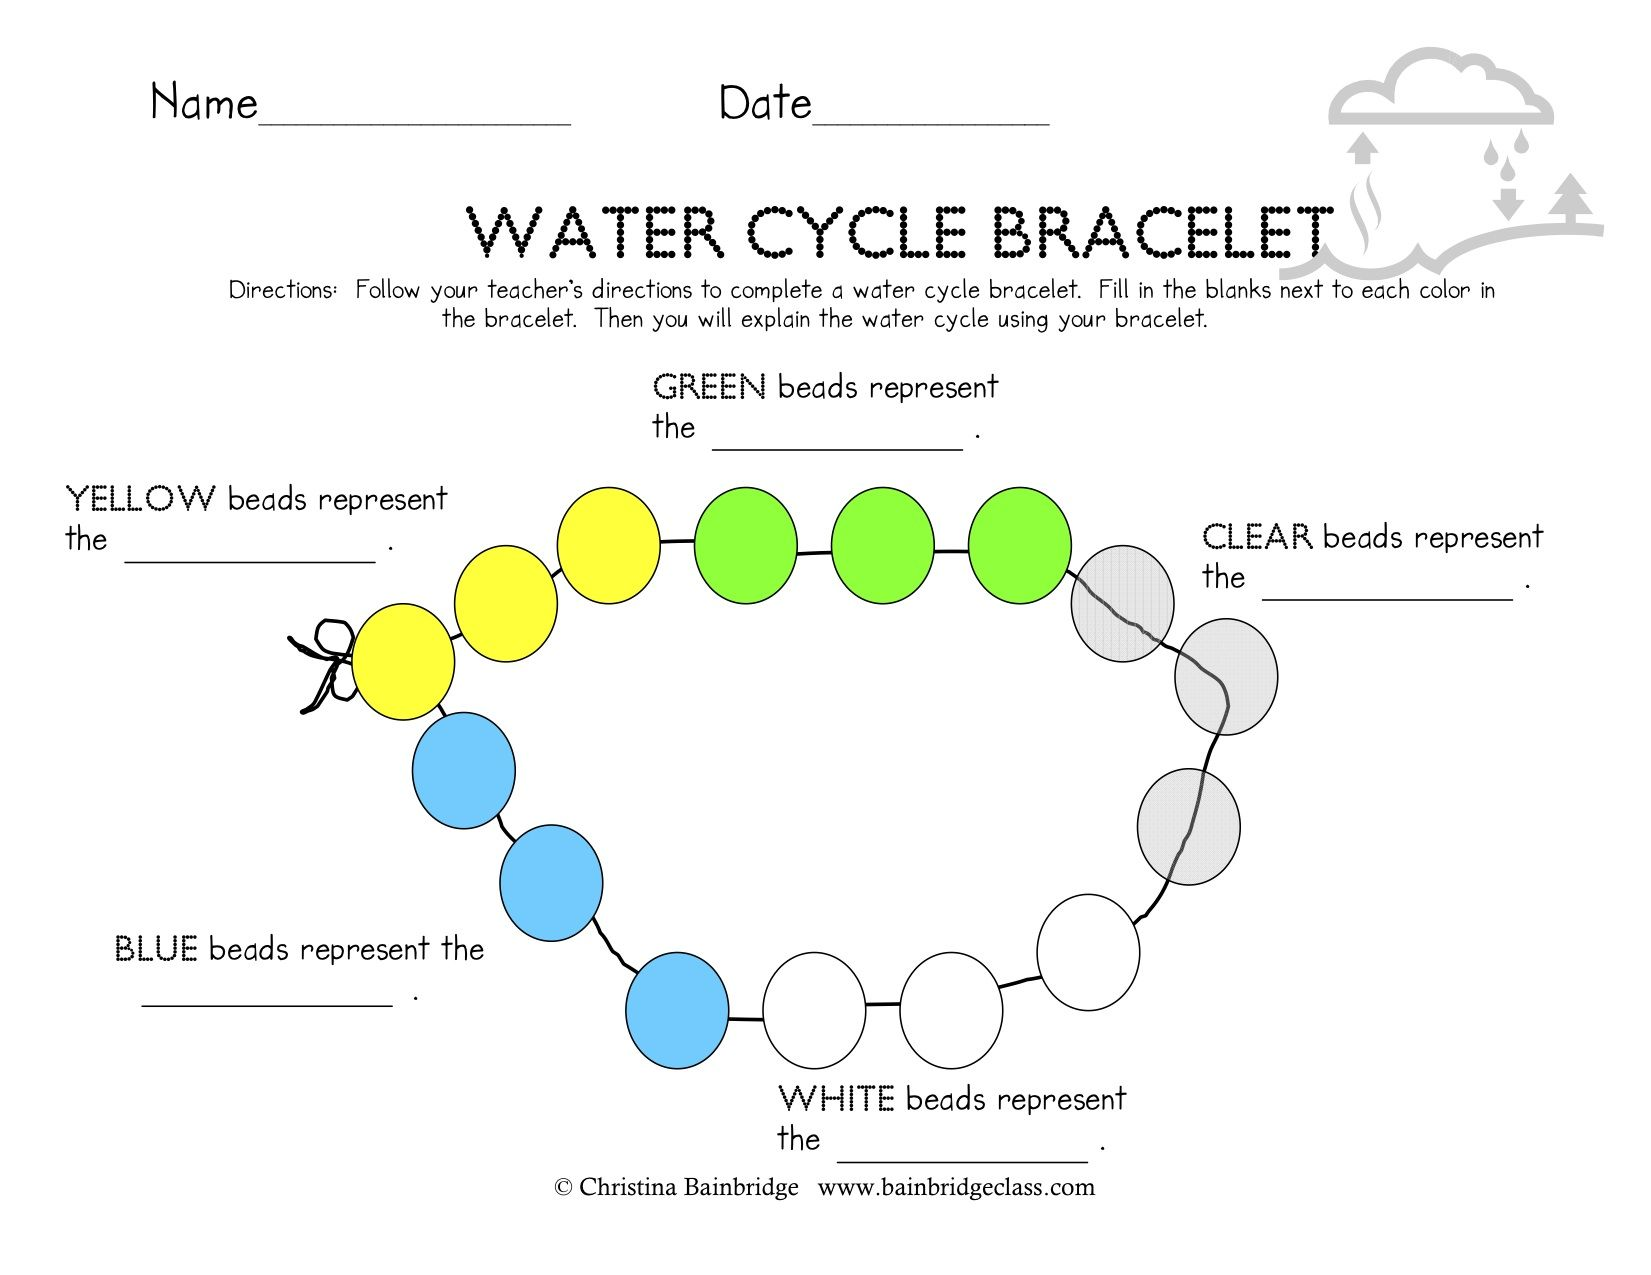 Water Cycle: Water Cycle Bracelets!